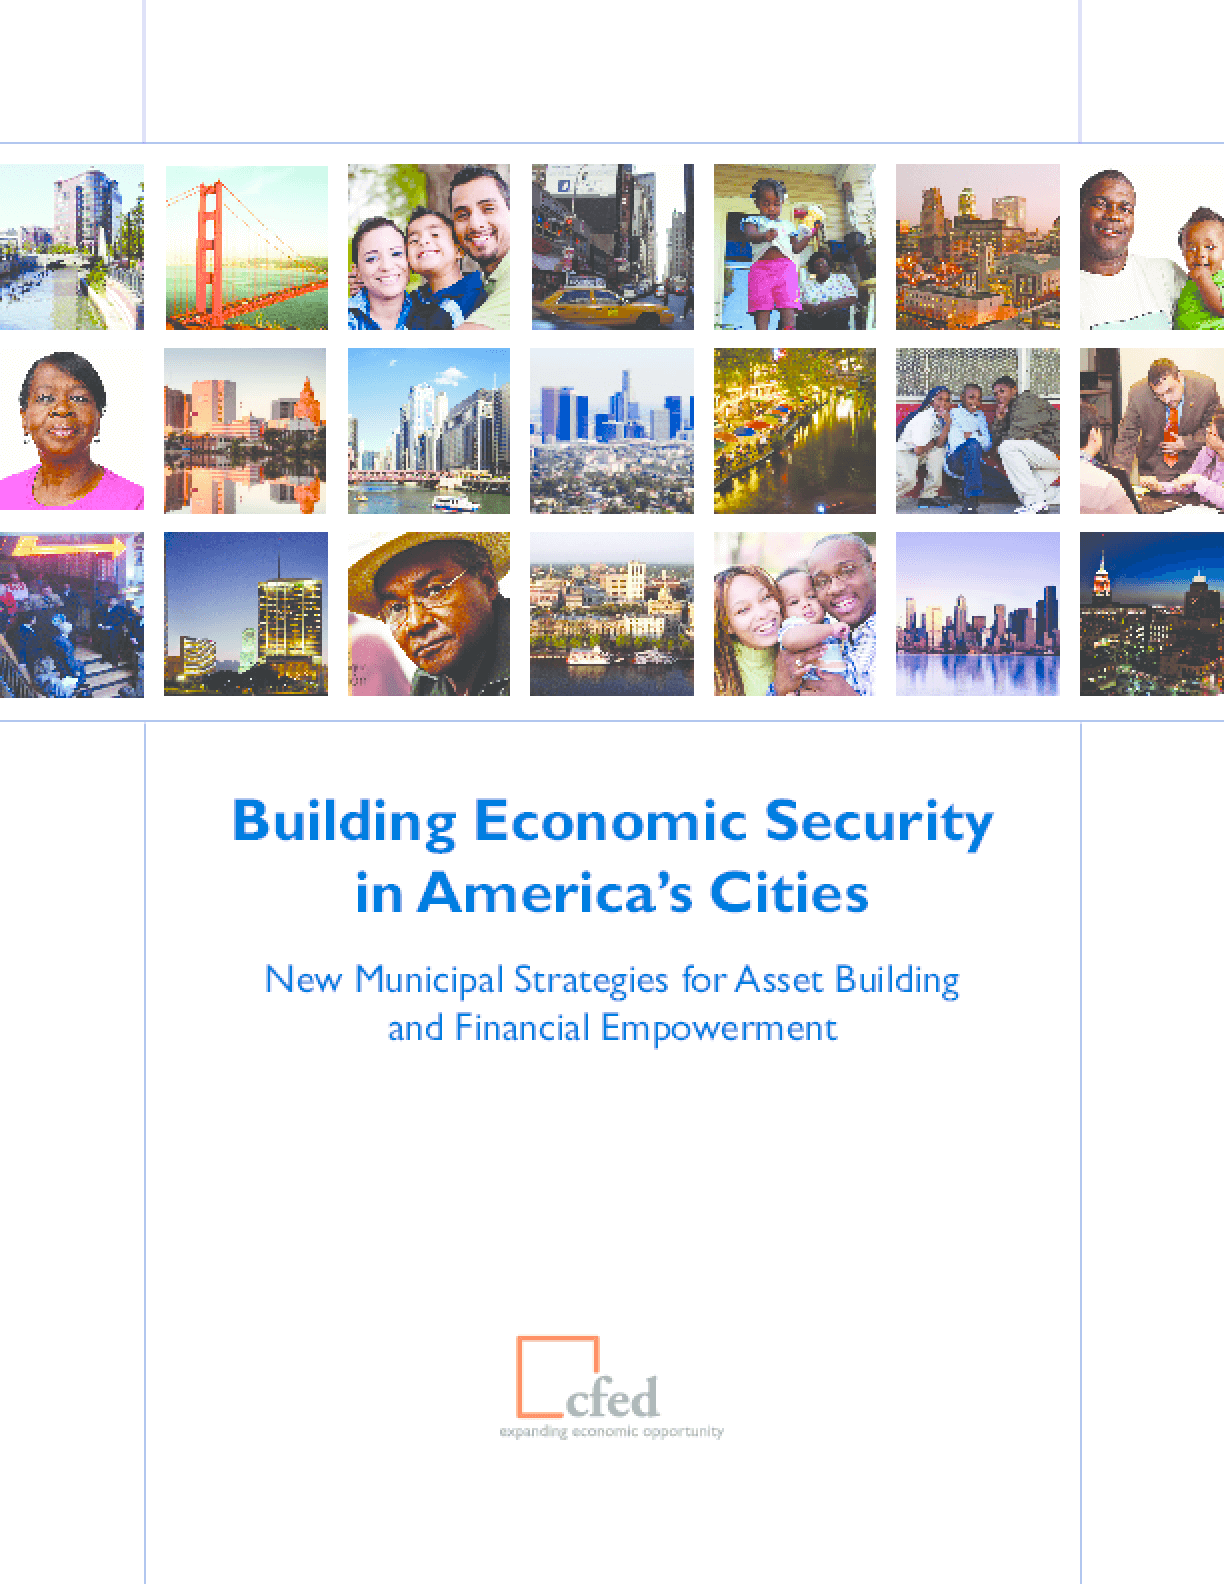 Building Economic Security in America's Cities: New Municipal Strategies for Asset Building and Financial Empowerment